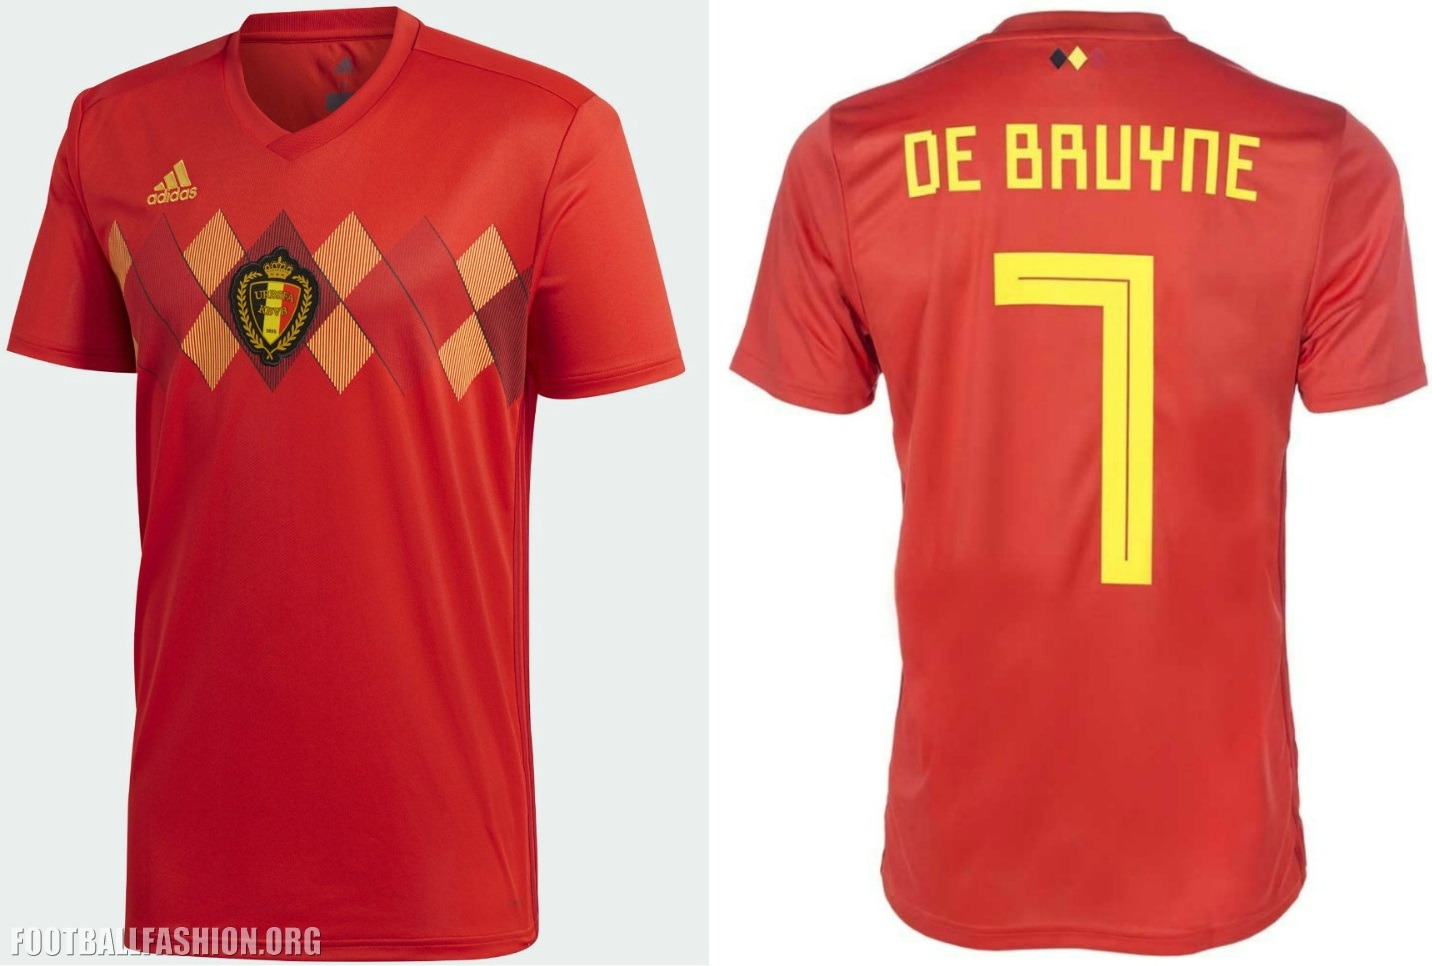 c3aeb23fa59 Belgium 2018 World Cup adidas Home Football Kit, Soccer Jersey, Shirt,  Maillot,